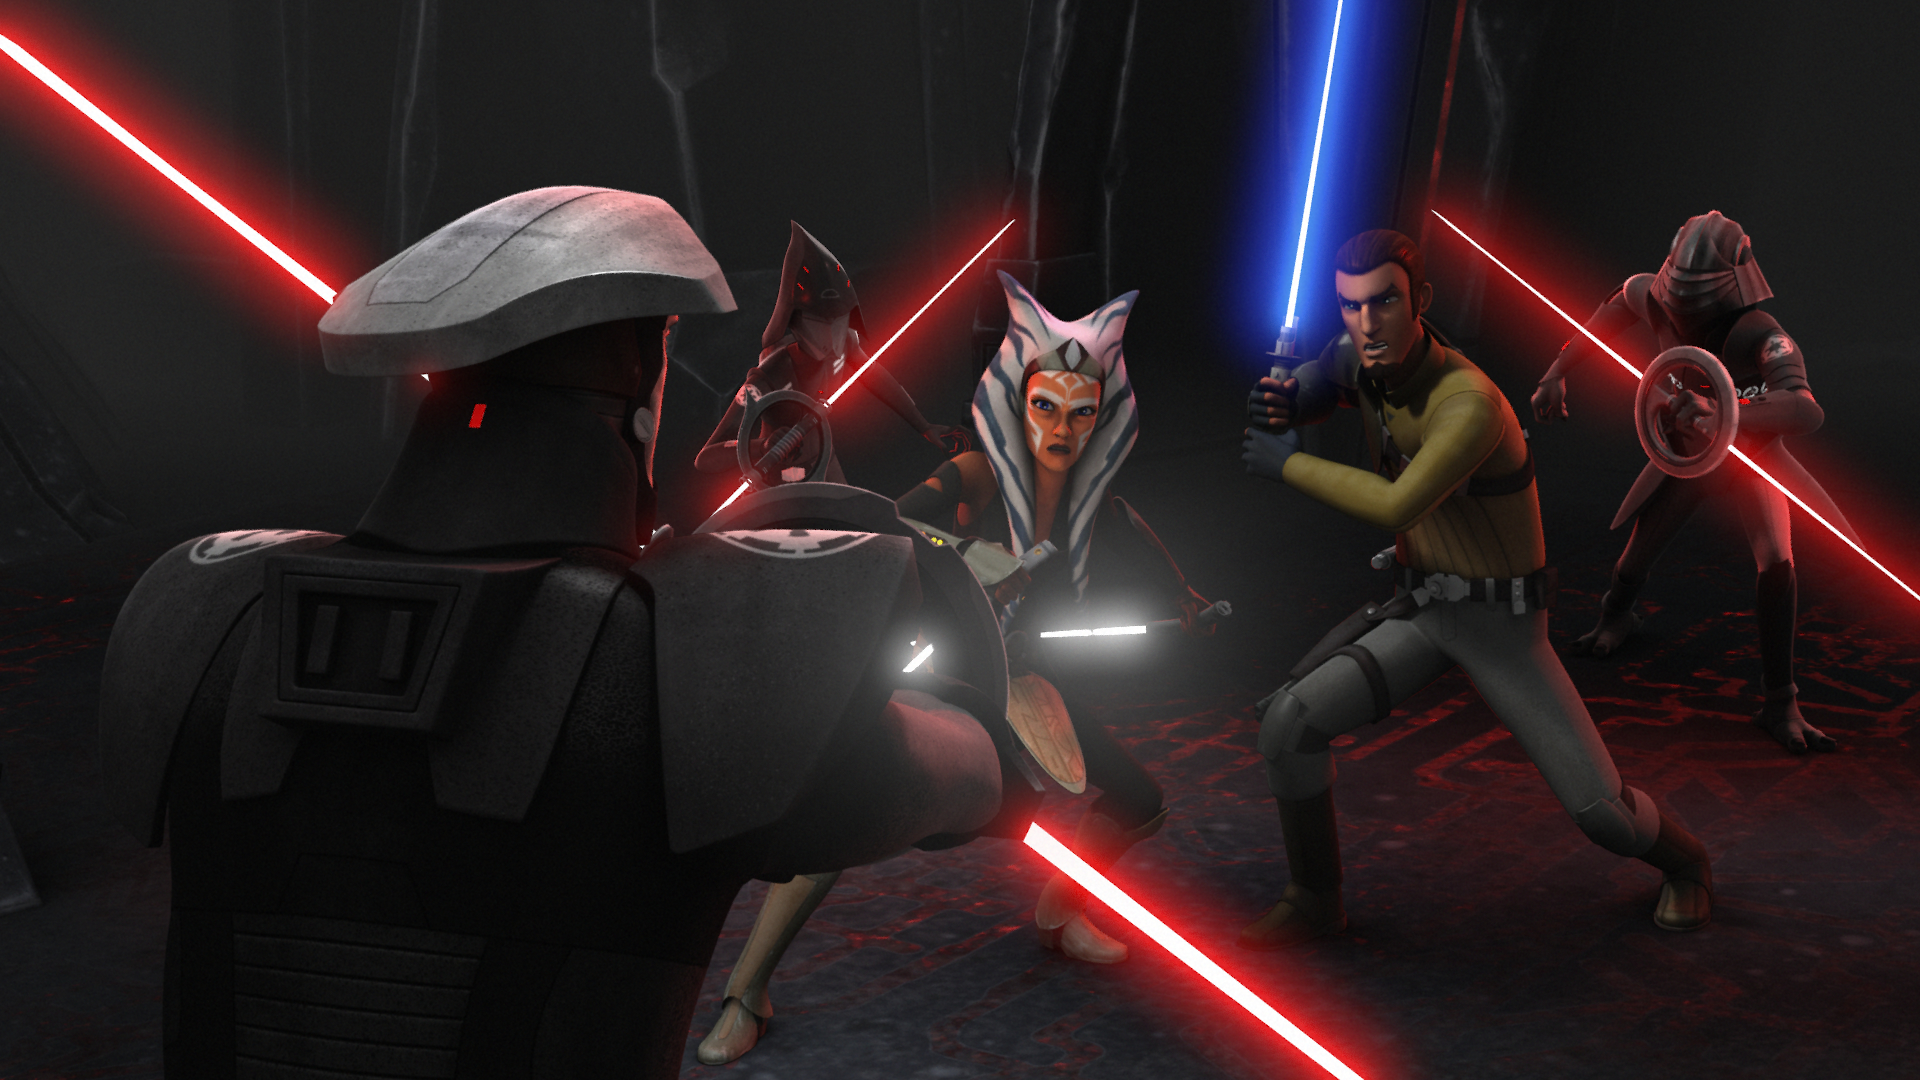 Ahsoka Has More Run Ins With The Group Known As The Star Wars Jedi Fallen Order Inquisitor 1573488 Hd Wallpaper Backgrounds Download